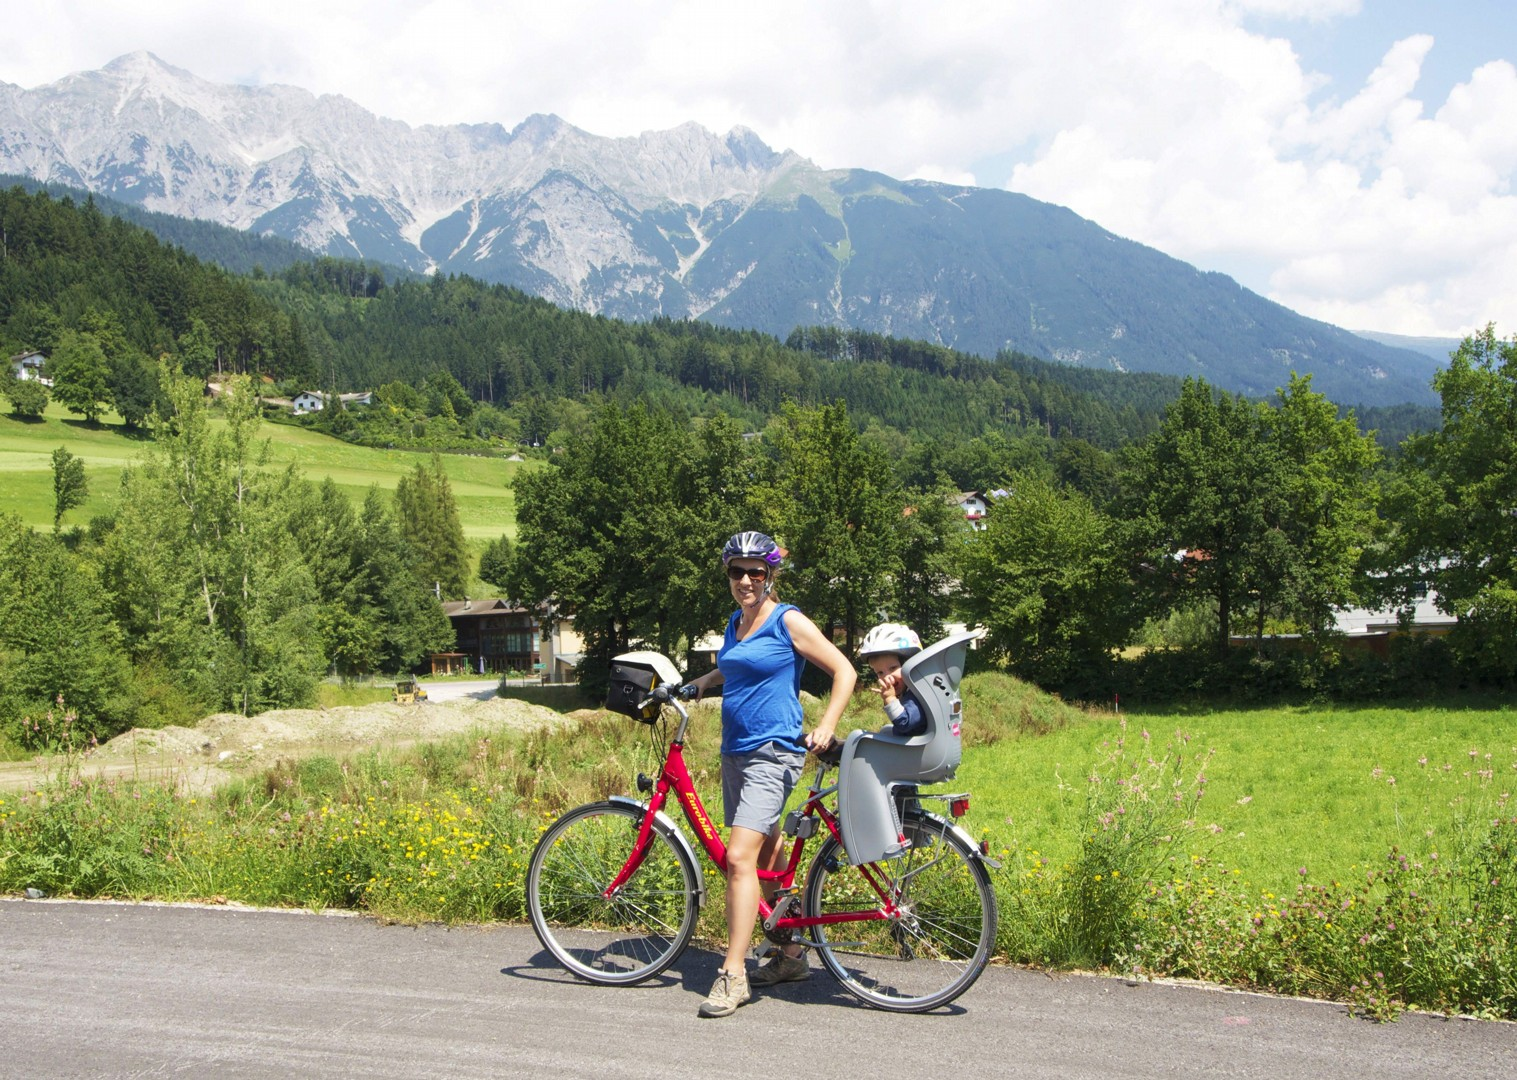 young-child-austrian-cycling-holiday-valleys.jpg - NEW! Austria - Tauern Valleys - Self-Guided Family Cycling Holiday - Family Cycling